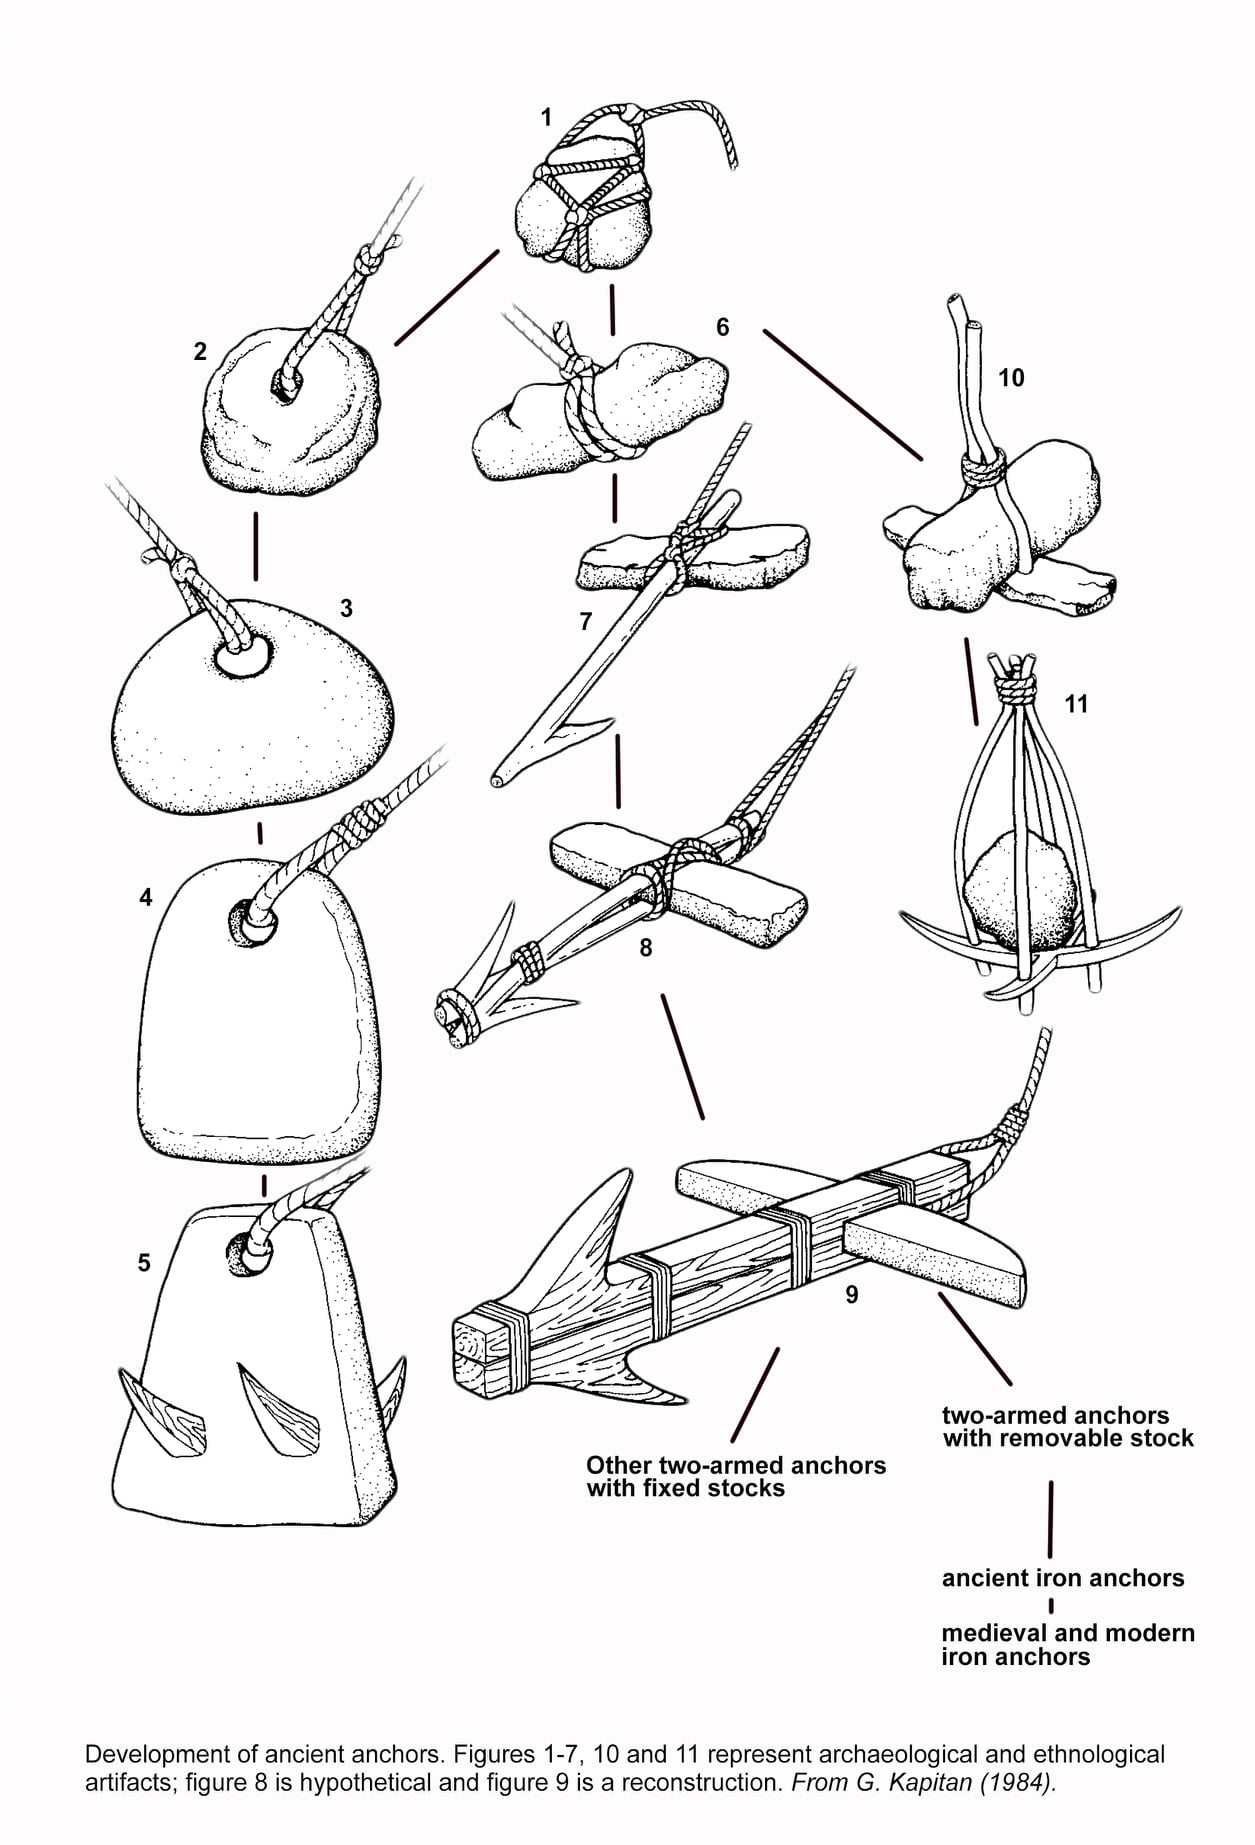 Illustration of the development of ancient anchors. (from G. Kapitan, 1984)